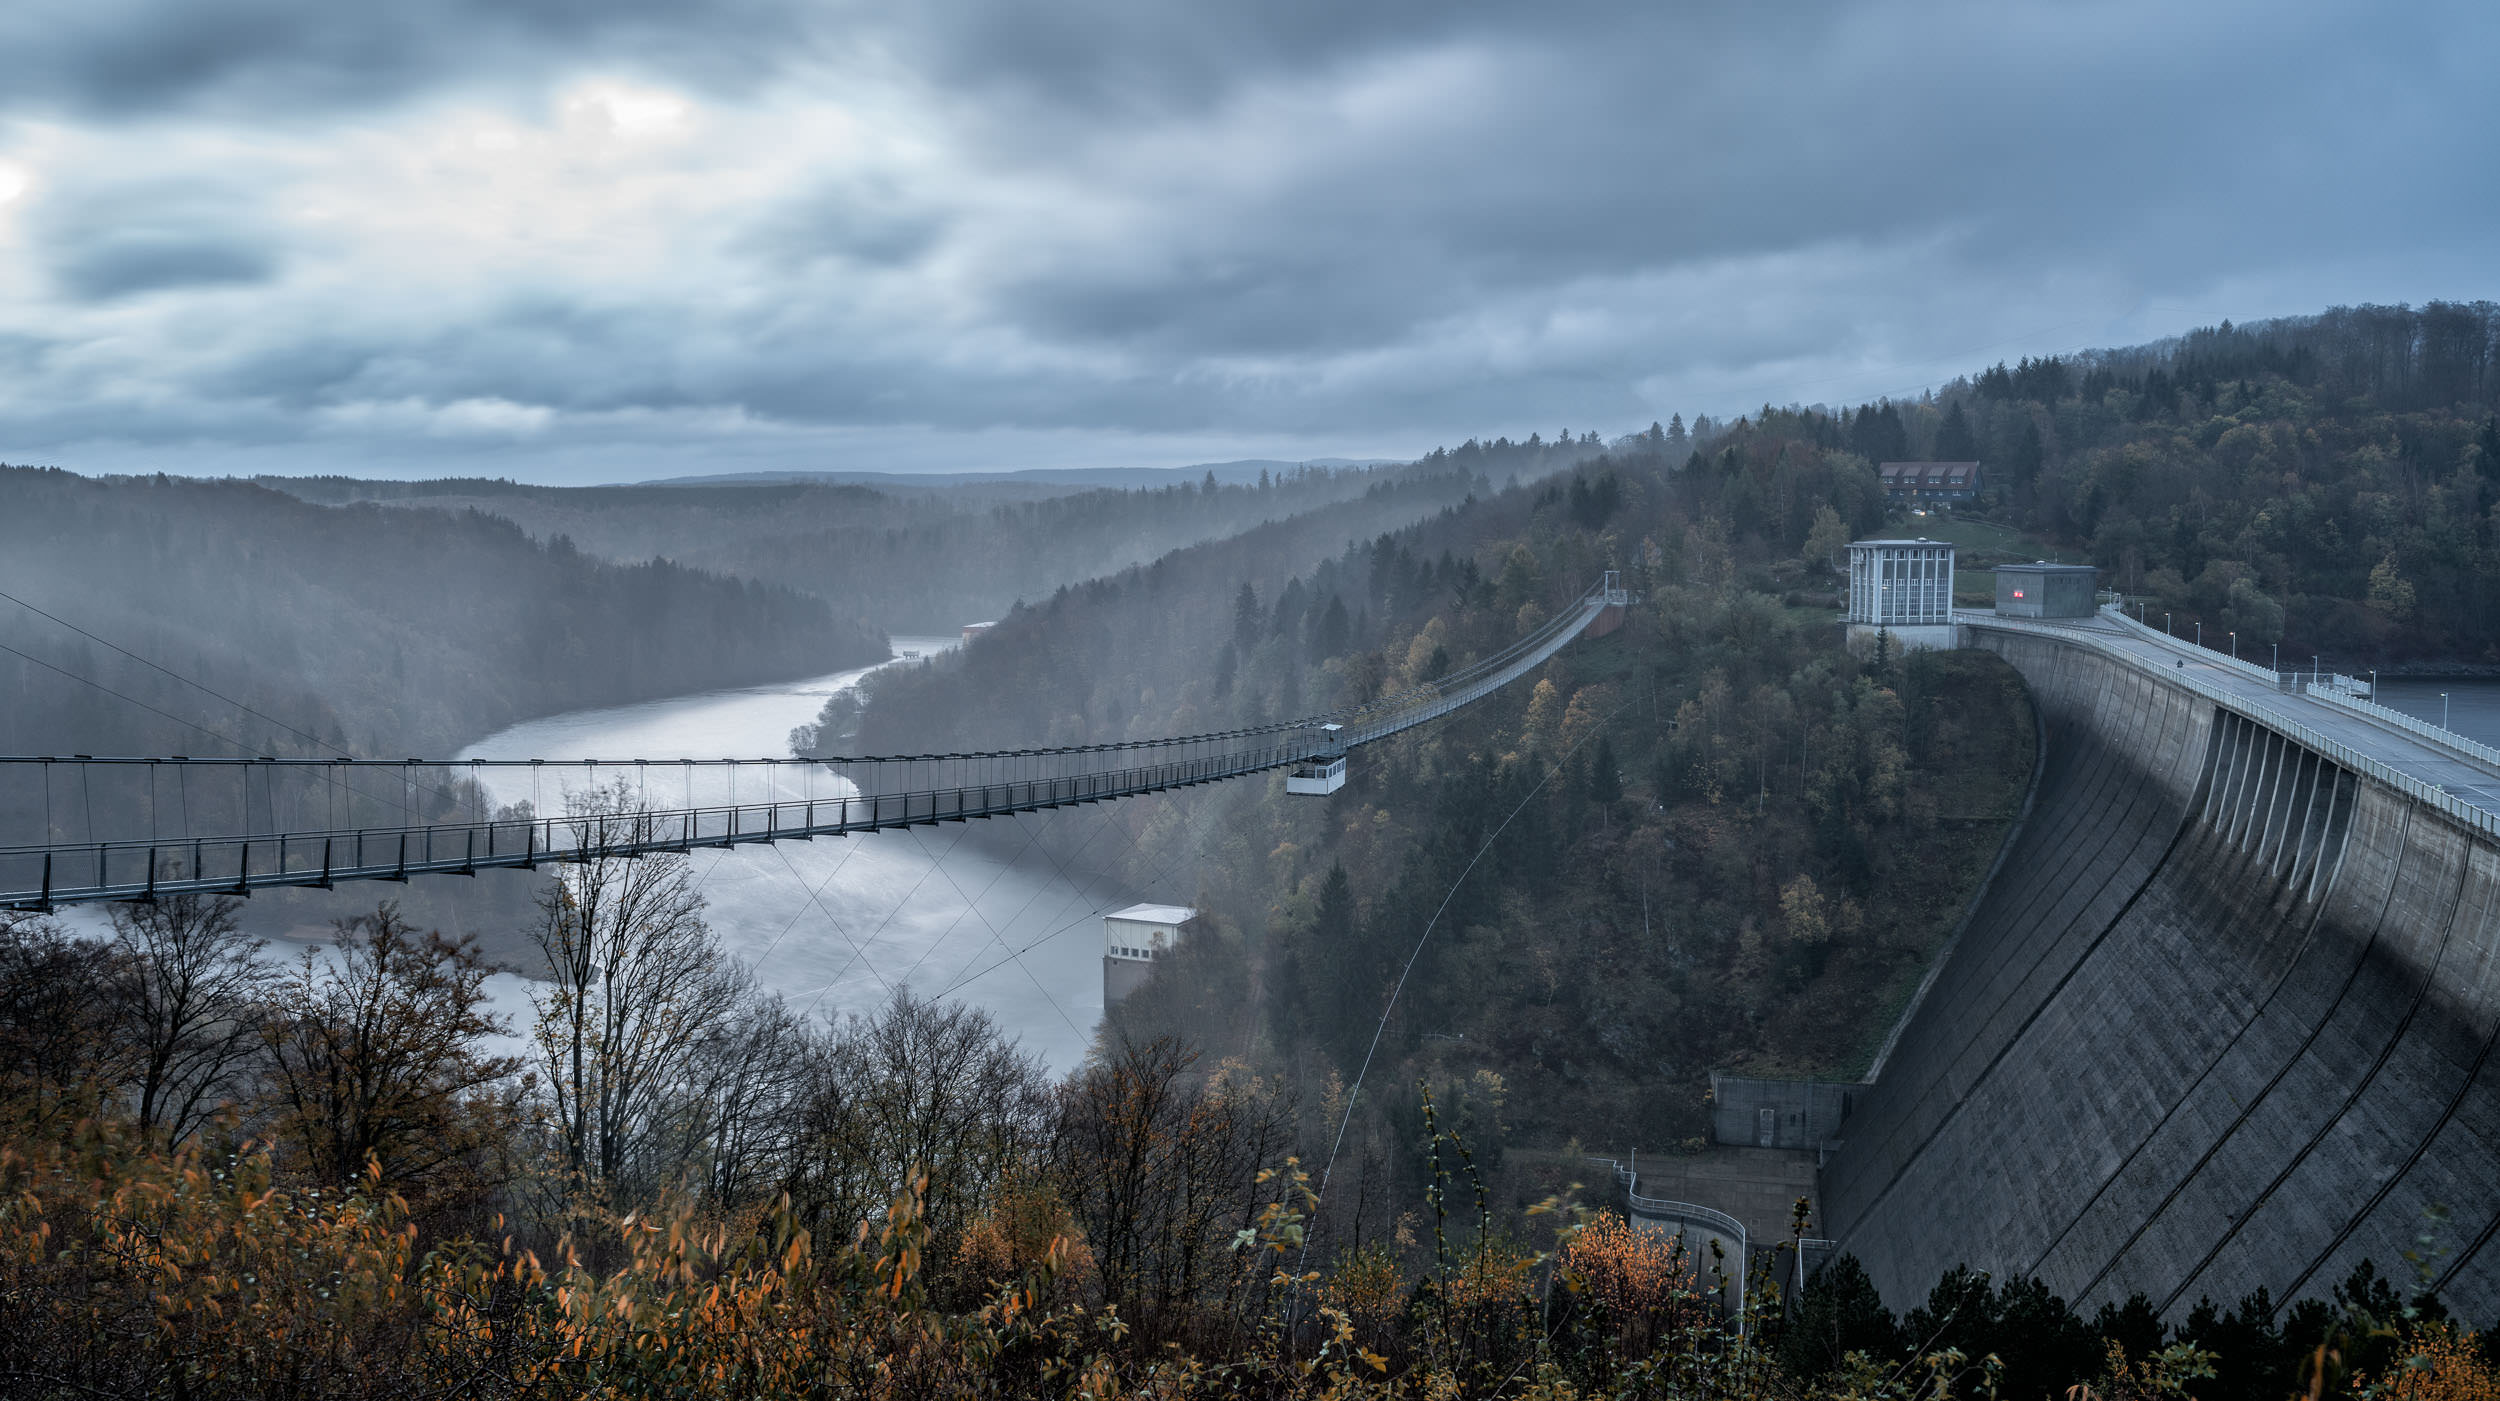 Suspension Bridge - Rappbodetalsperre, Harz